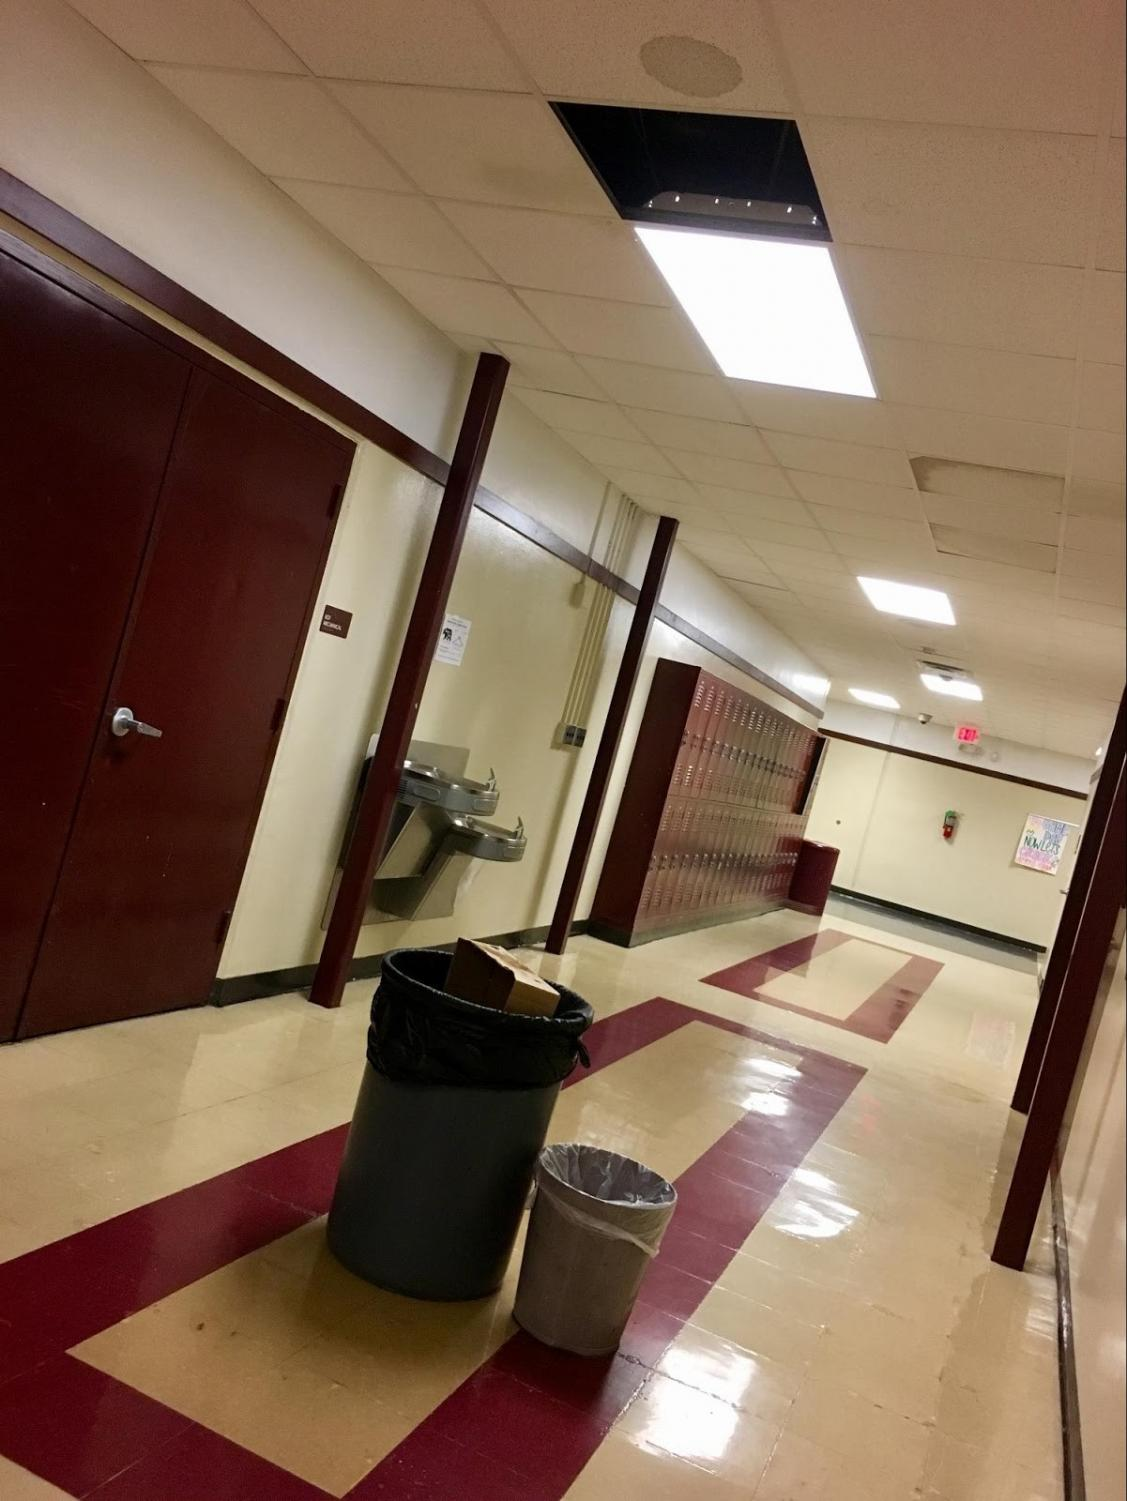 This leaky roof in the B-Hall is one example of the issues that BHS currently experiences. The bond would provide funds to repair this and other problems, as well as benefiting the school in other ways.